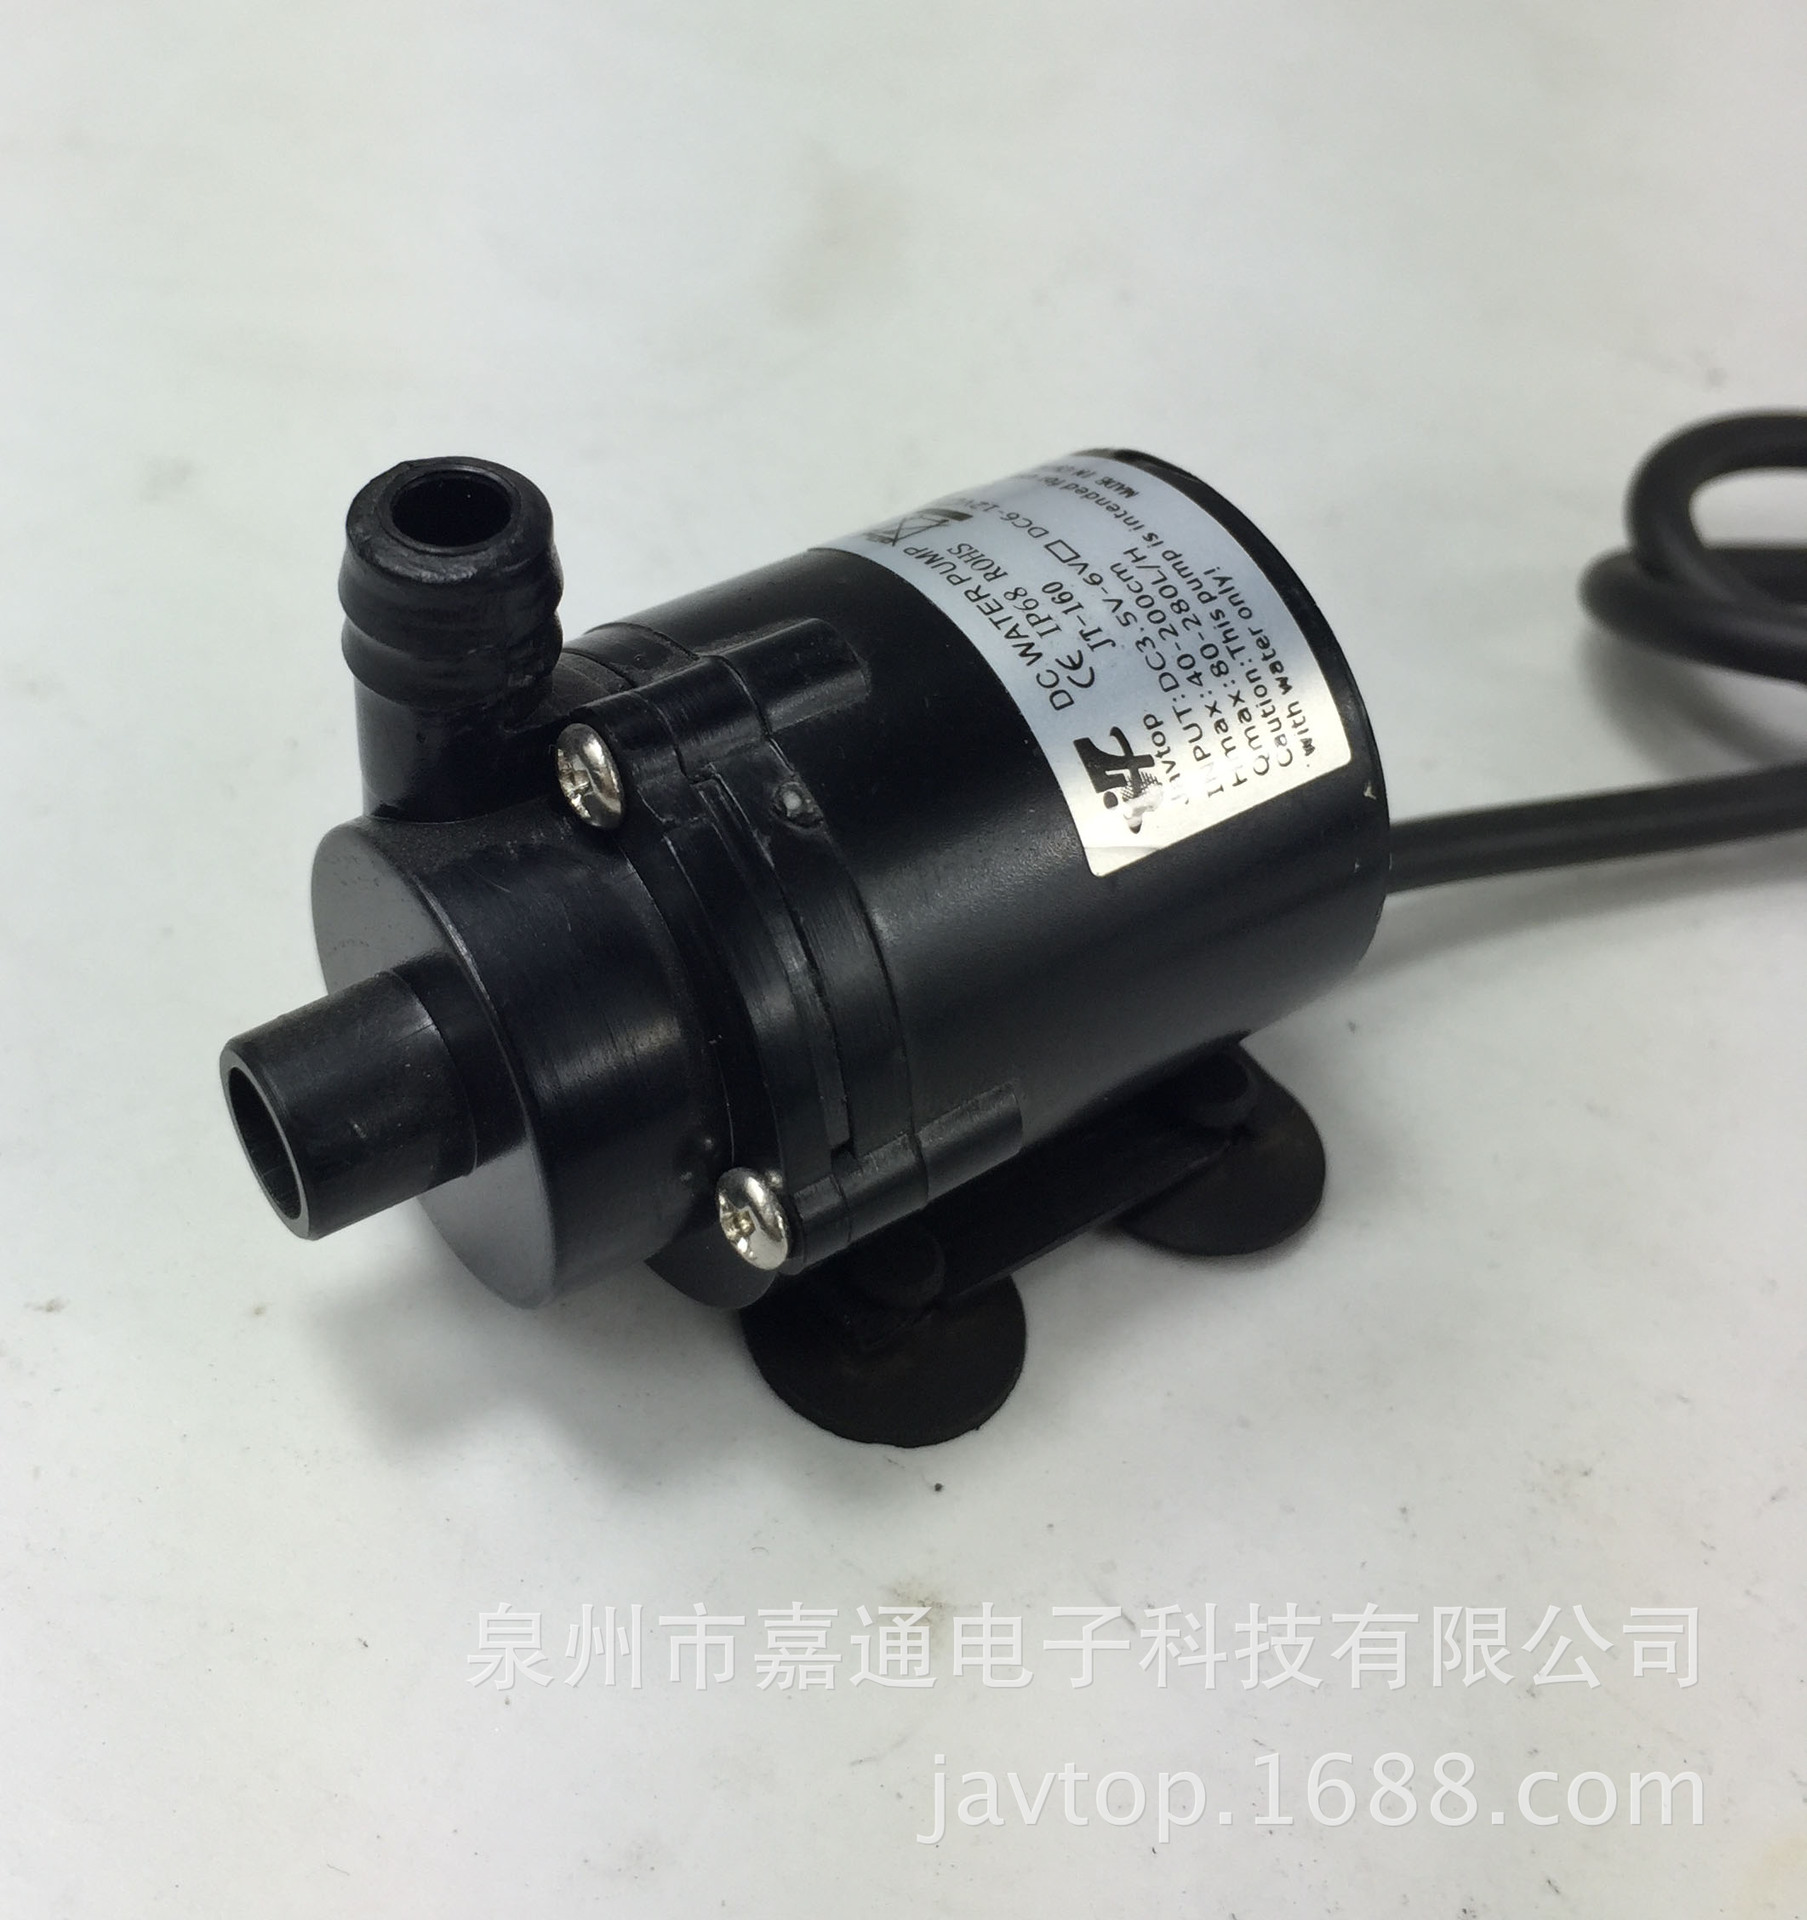 Mini Brushless DC Water Filter Pump Submarine pump JT-160 mini water pump zx43a 1248 plumbing mattresses high temperature resistant silent brushless dc circulating water pump 12v 14 4w